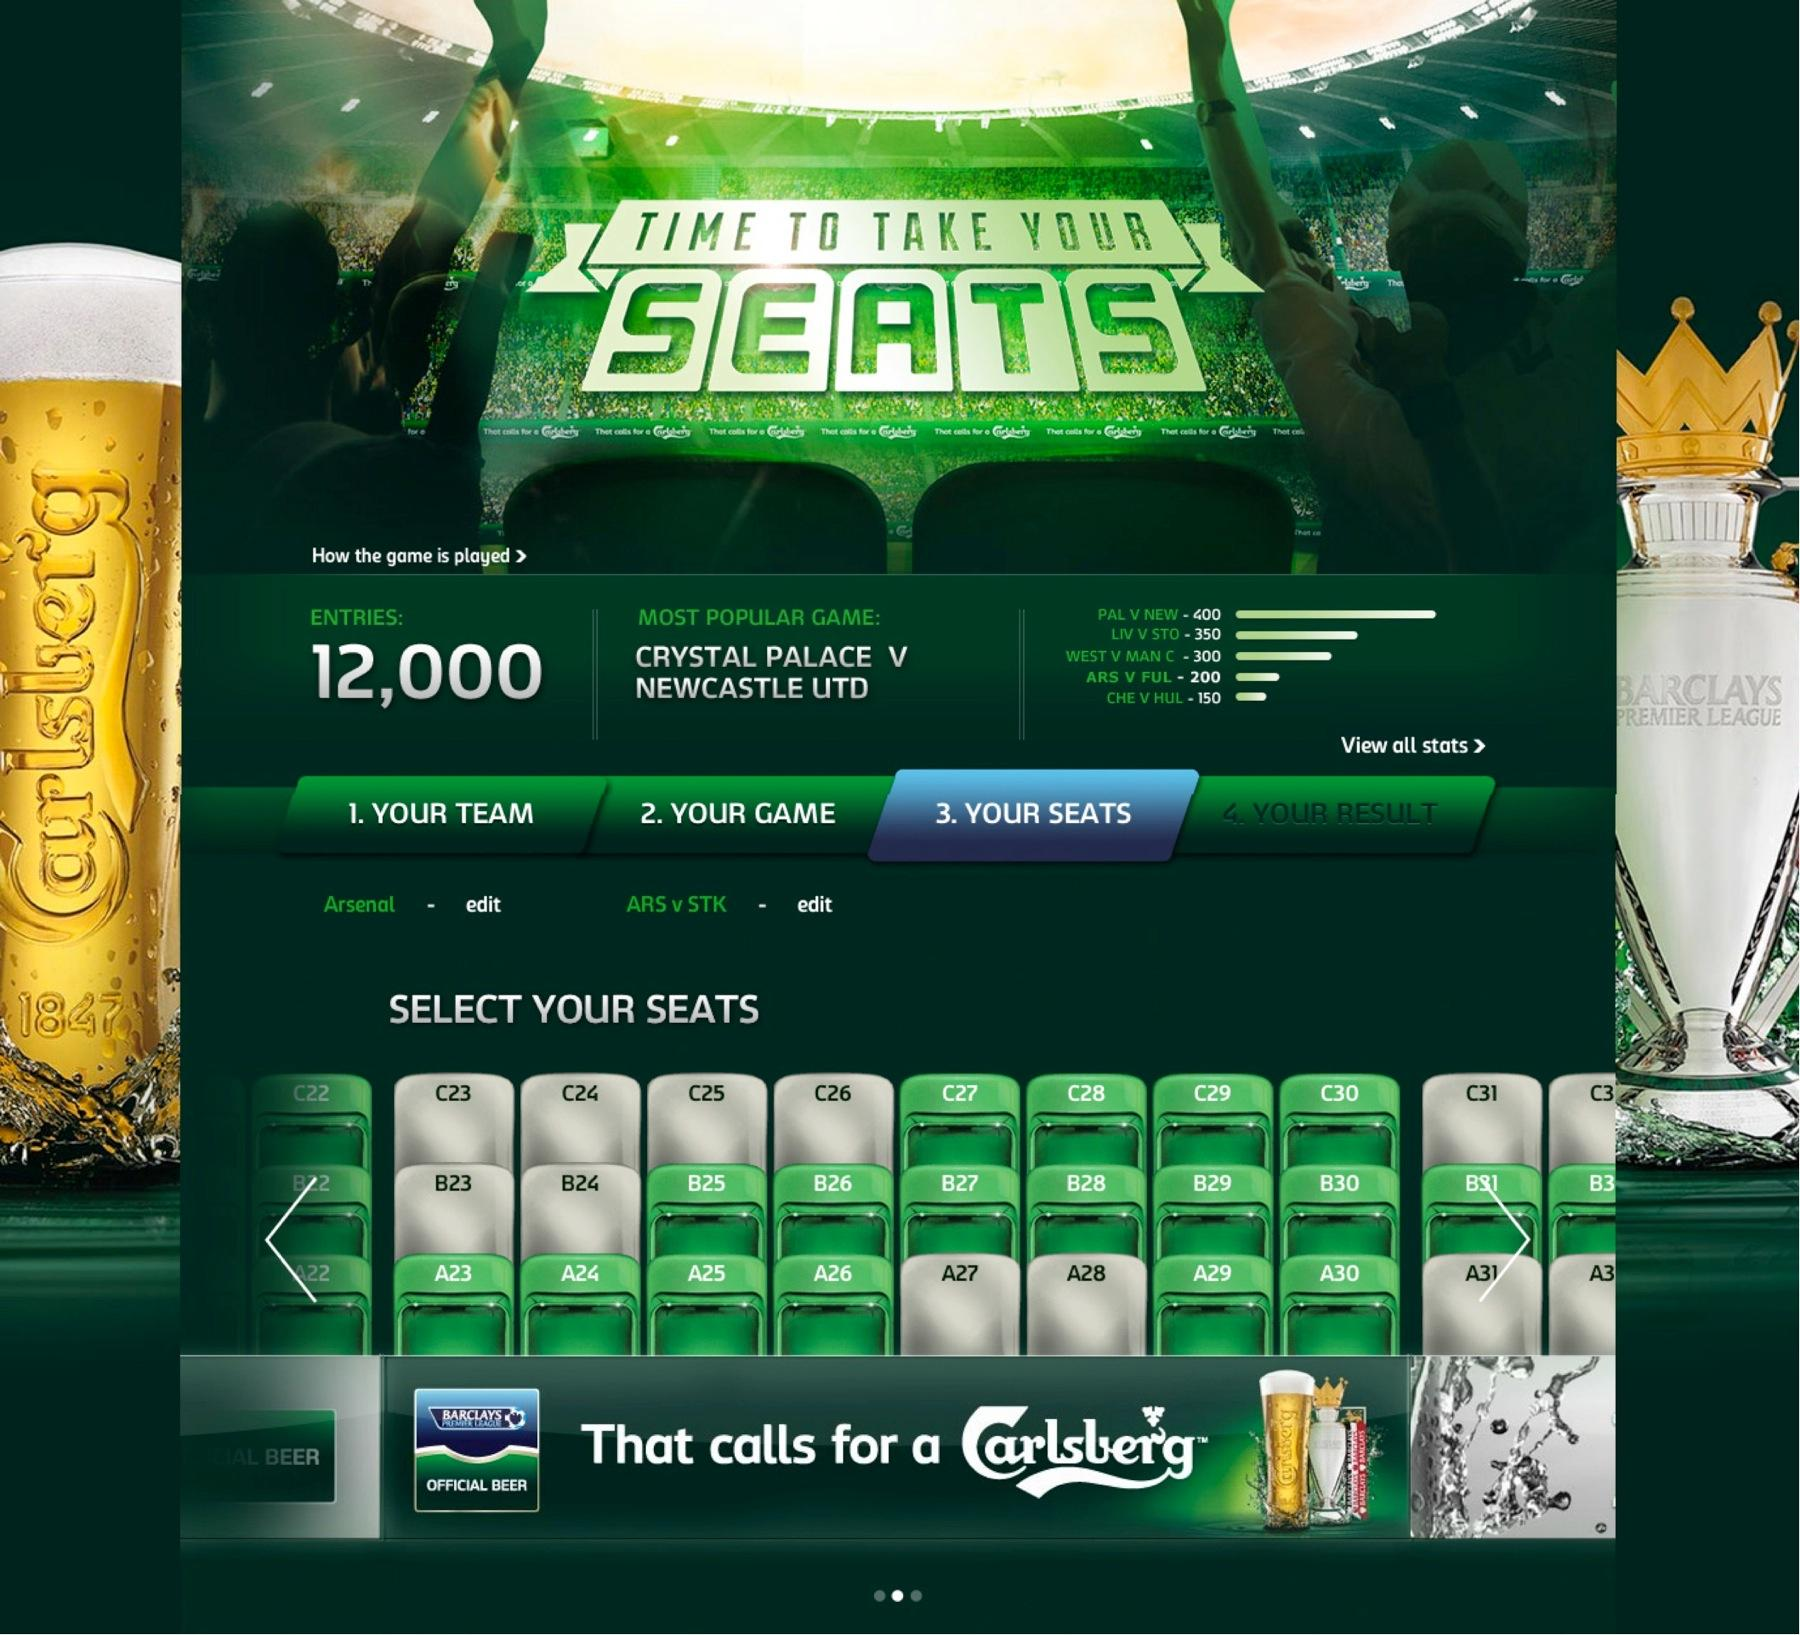 Carlsberg Digital Ad -  Time to take your seats